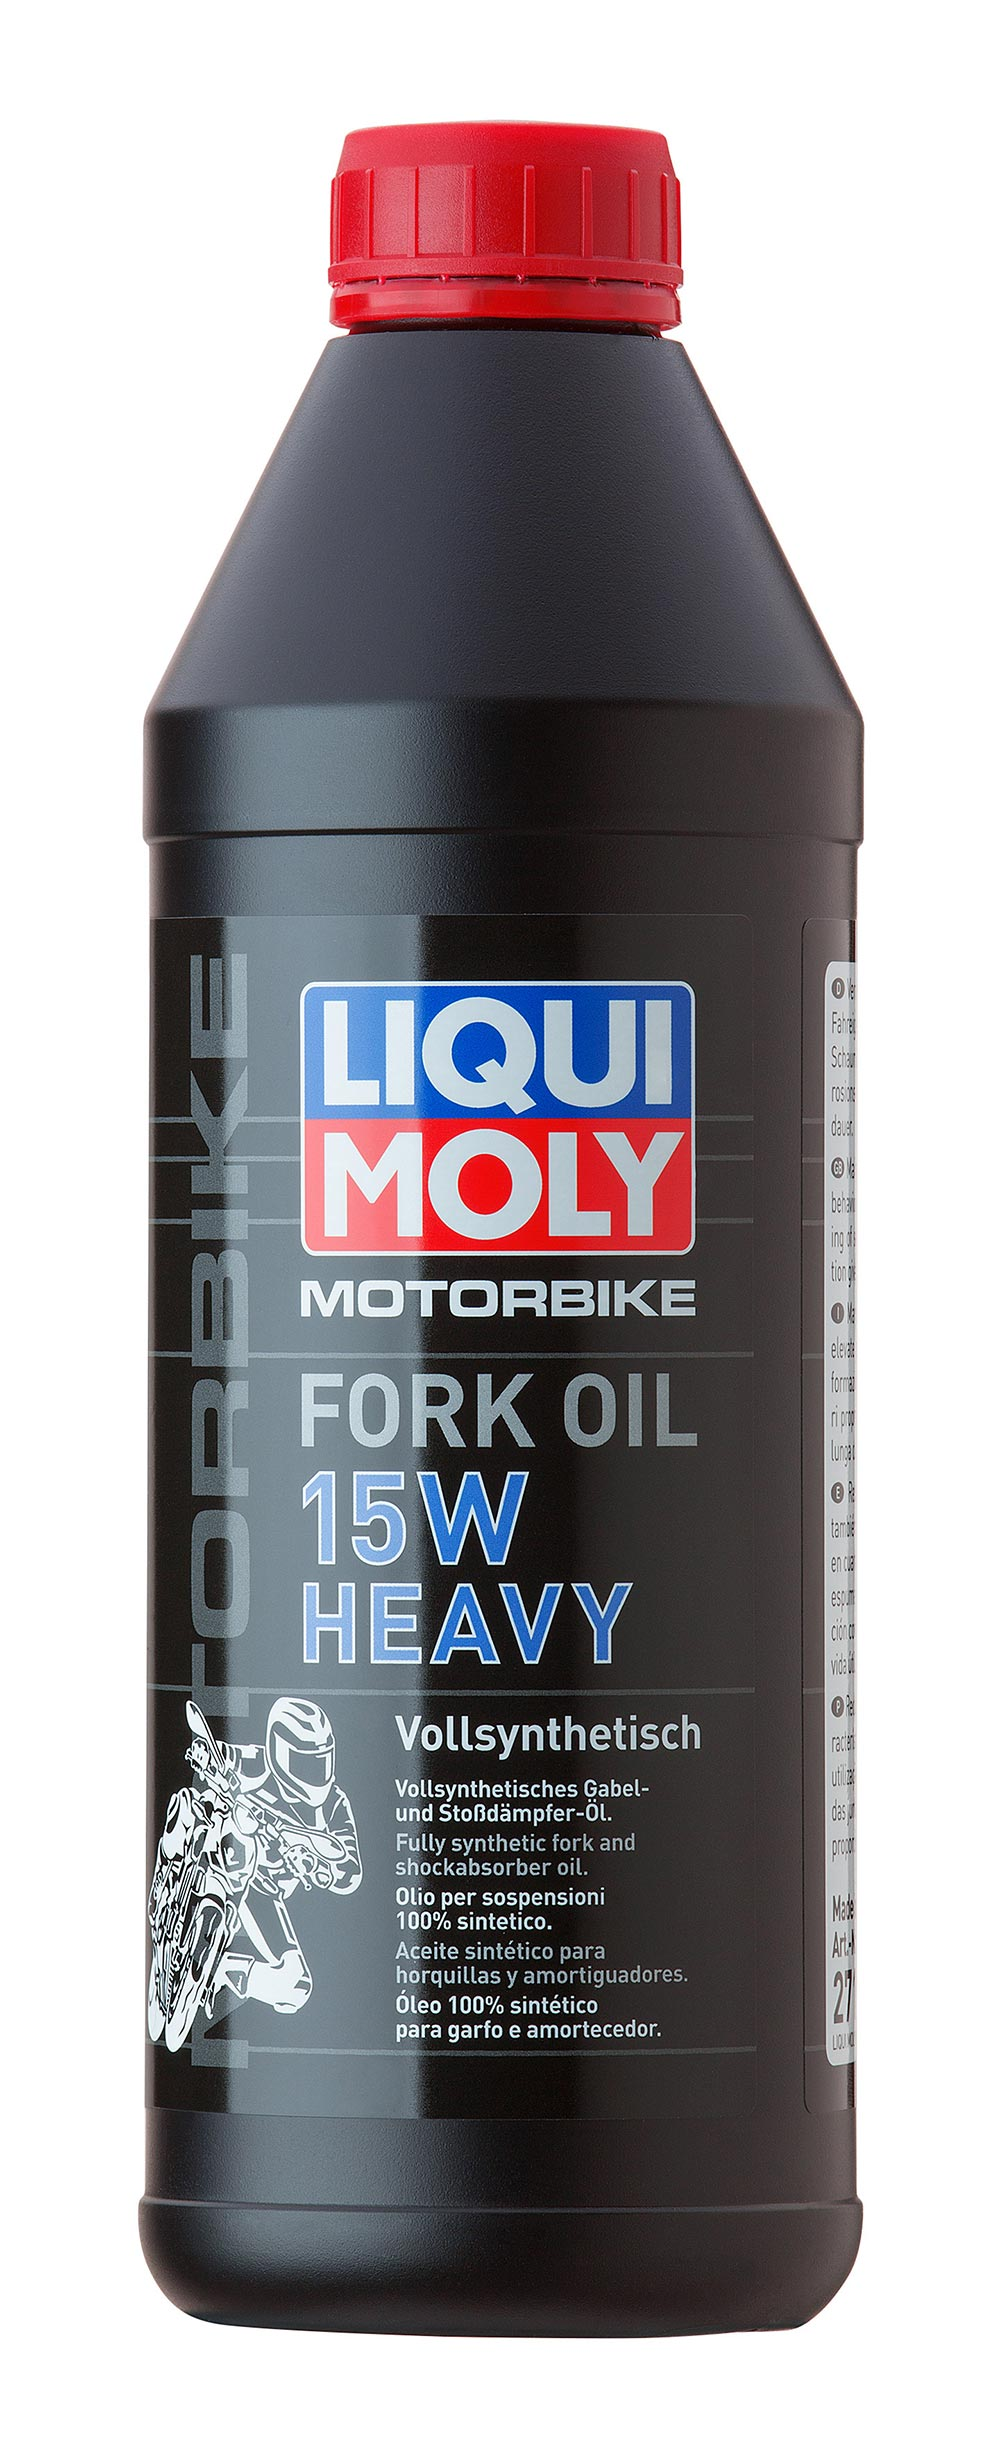 LIQUIMOLY СИНТ.МАСЛО Д/ВИЛОК И АМОРТИЗ. MOTORBIKE FORK OIL HEAVY